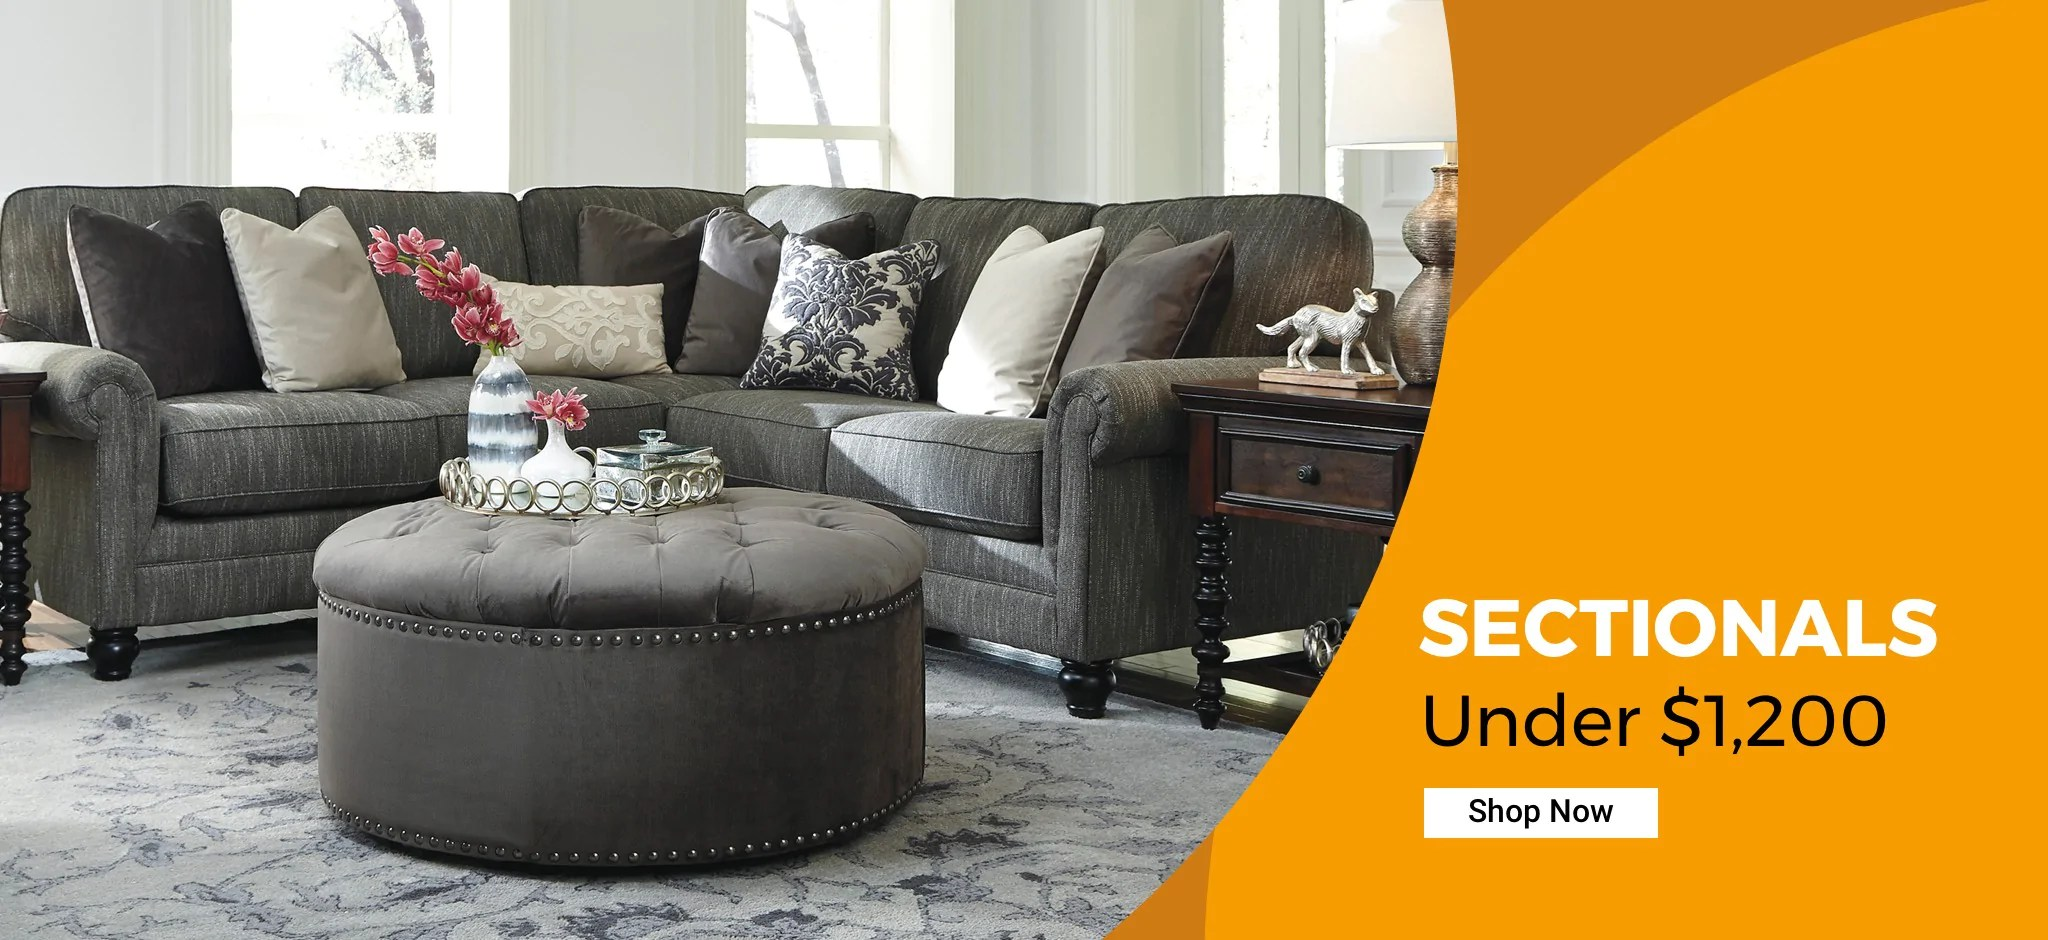 Best Furniture Stores In Northern Va Regency Furniture Stores In Maryland Virginia